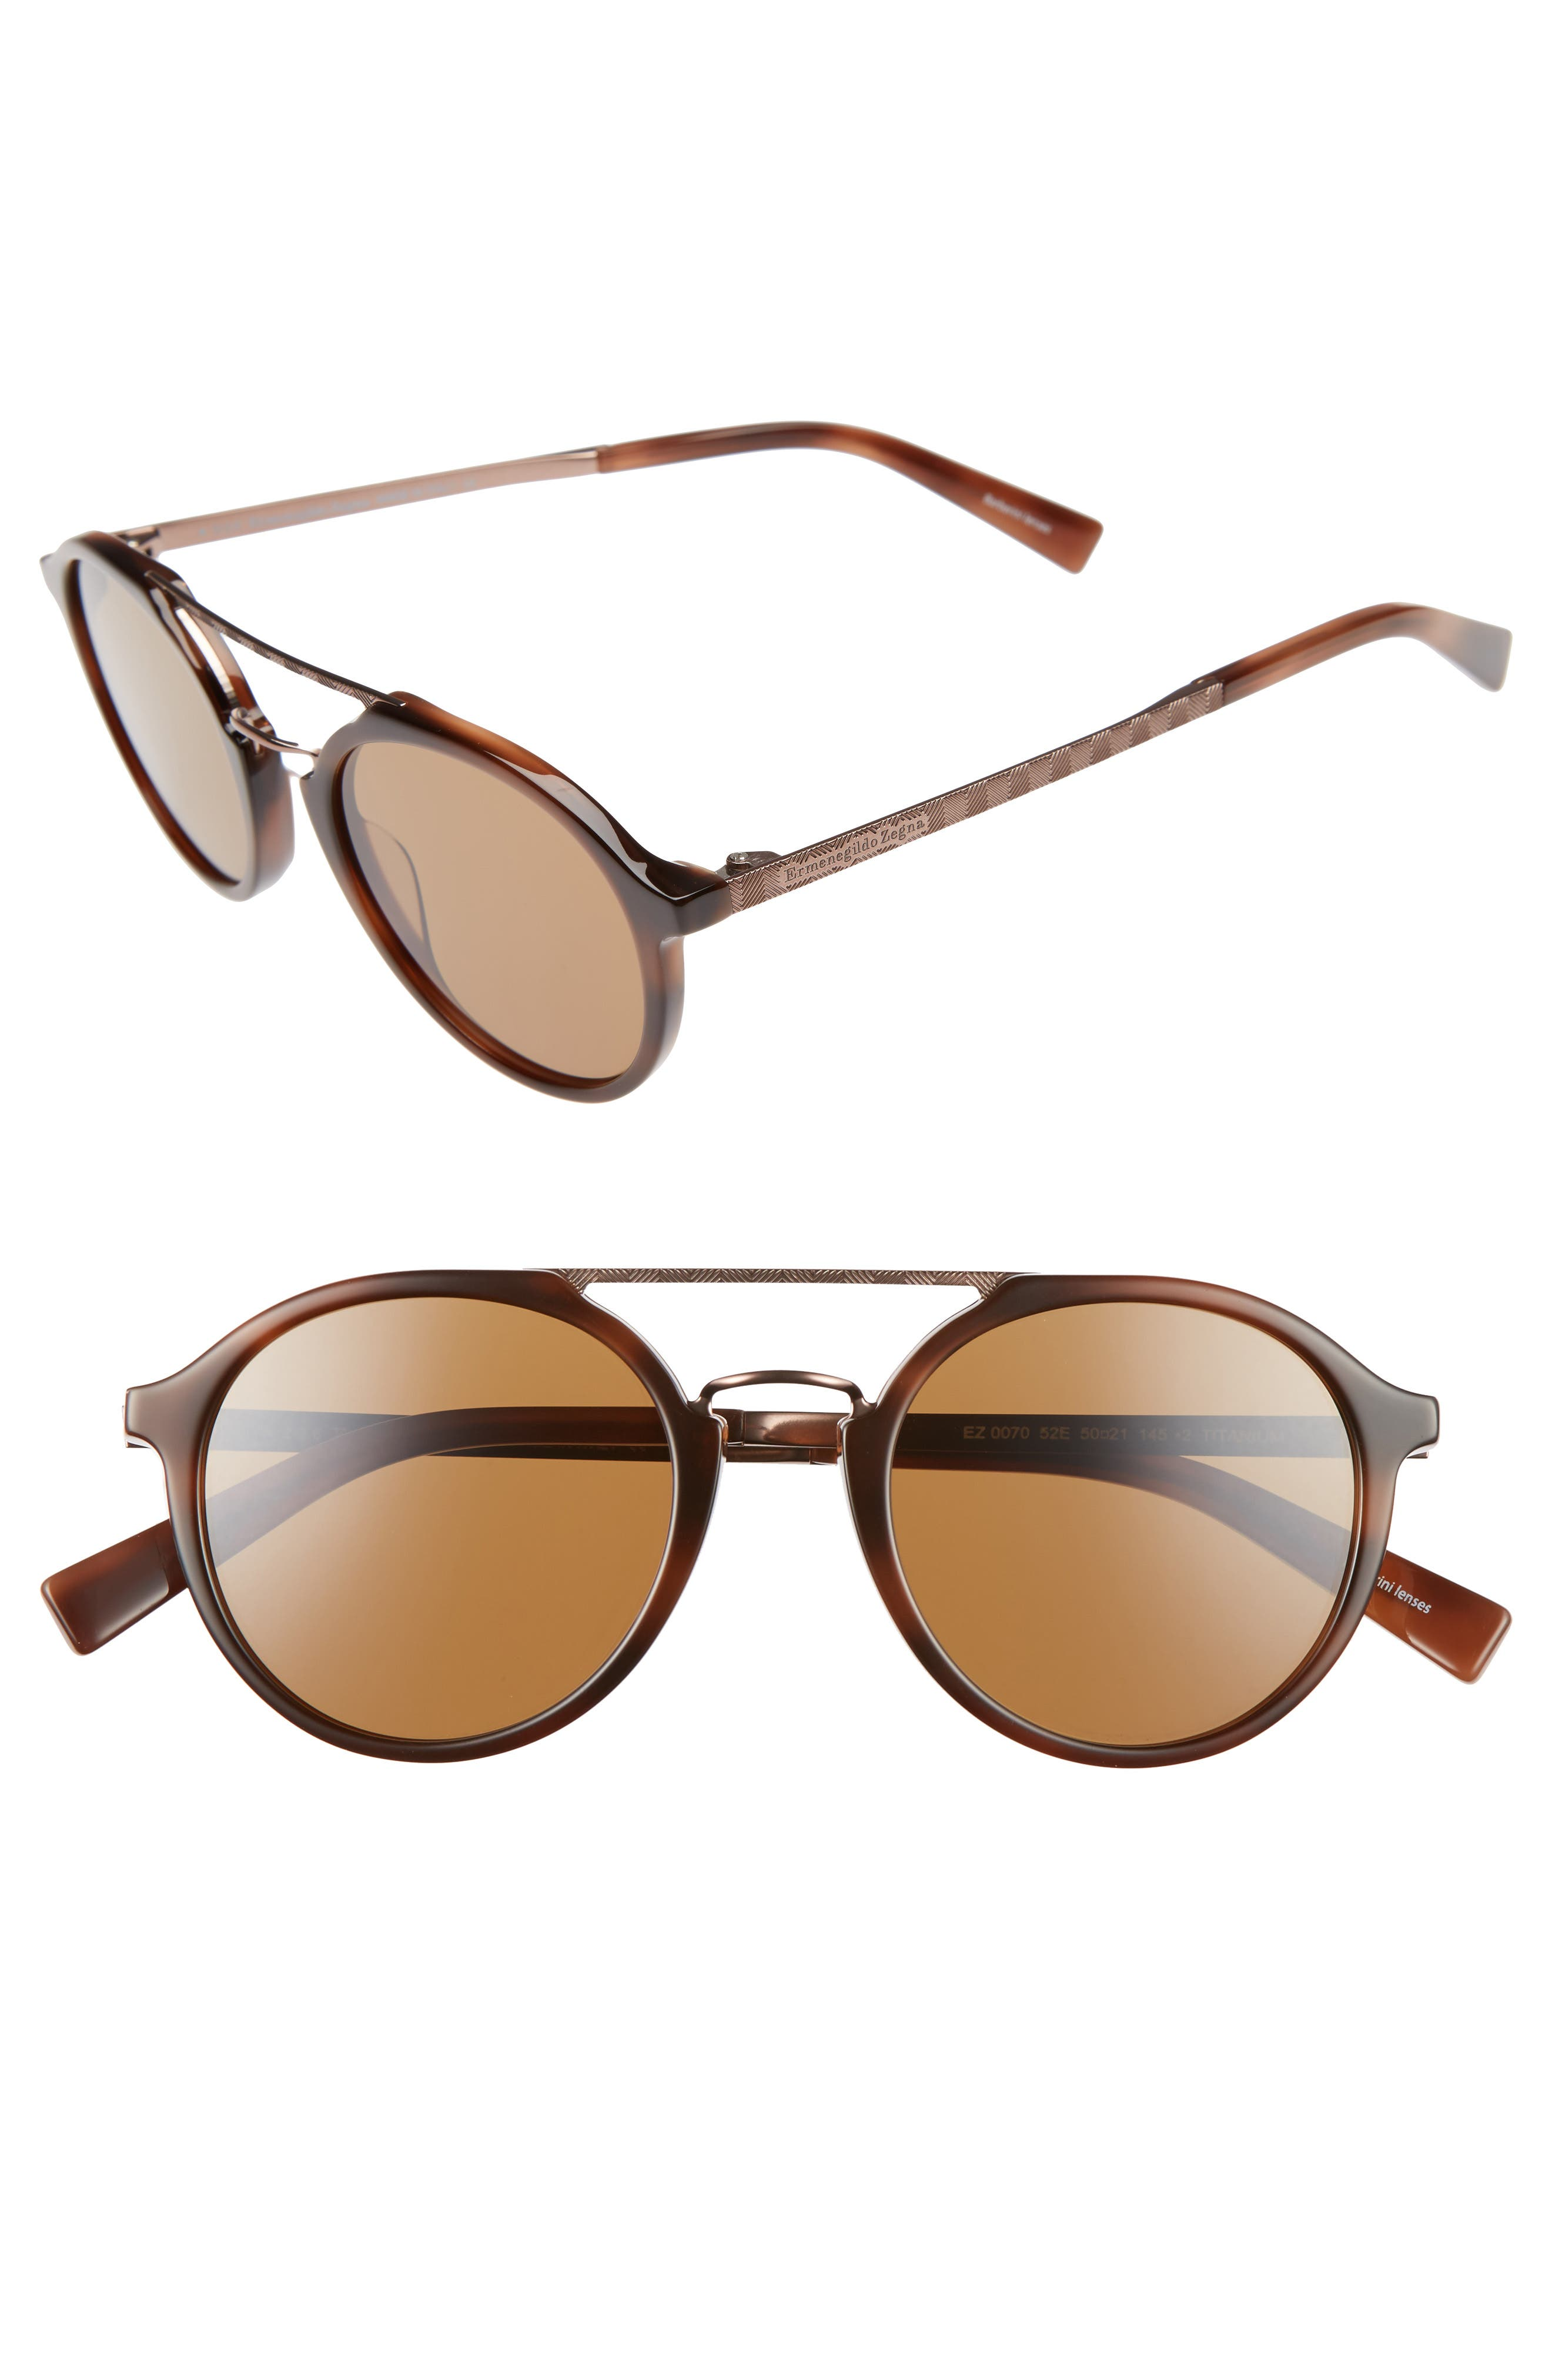 Retro 50mm Sunglasses,                         Main,                         color, HAVANA/ LIGHT BRONZE/ BROWN